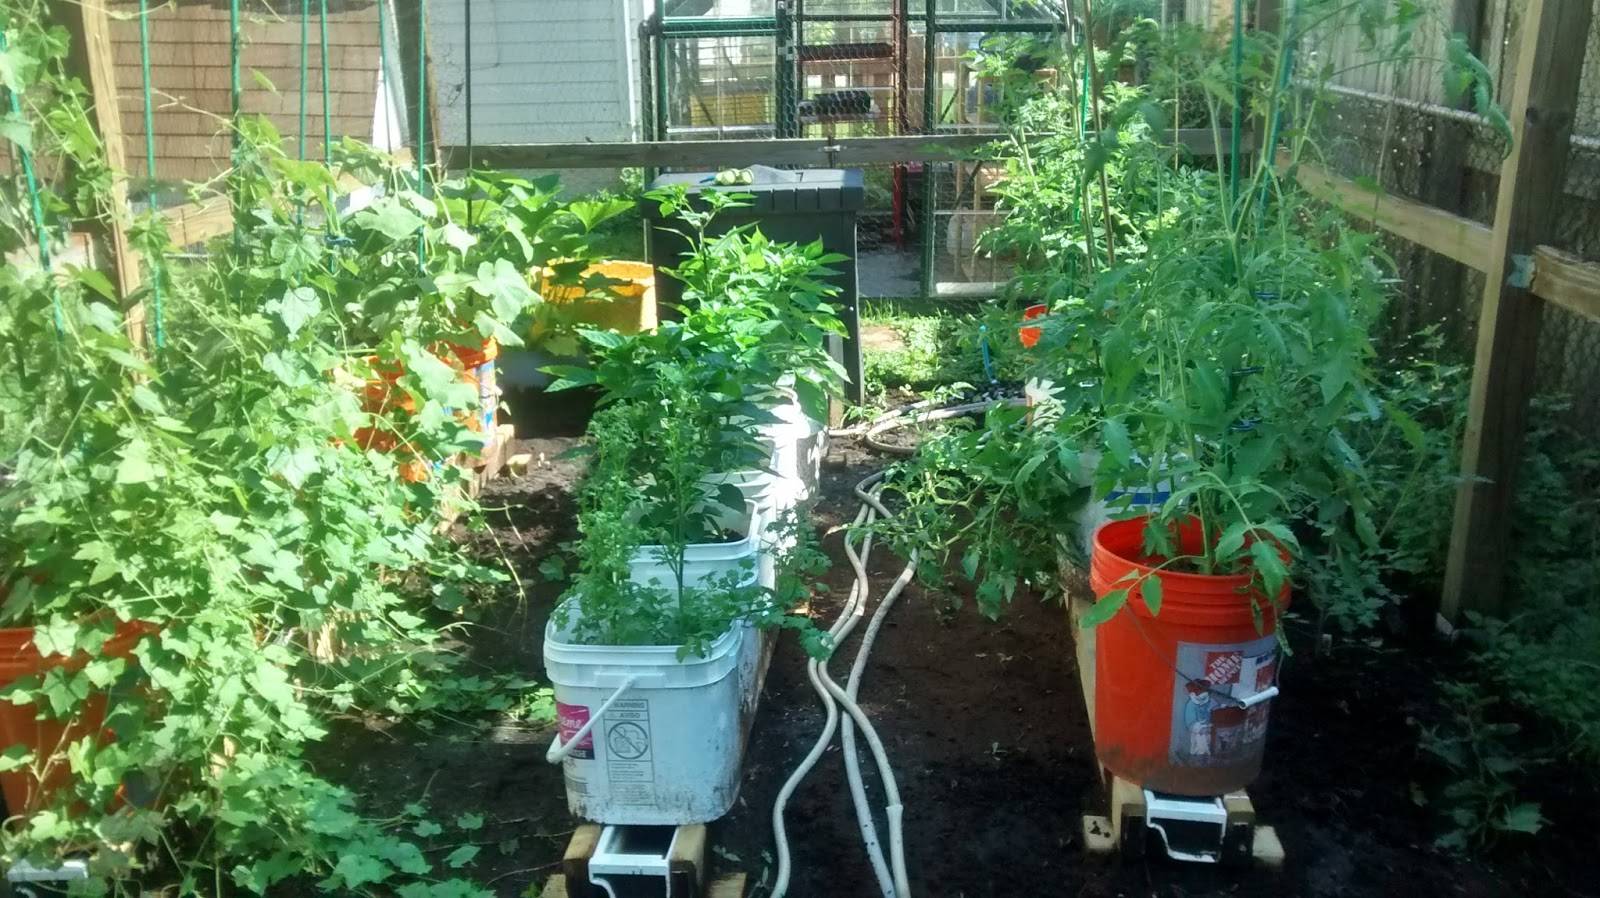 You May Notice That The Tomato Plants Are Not In The Middle Rain Gutter  Anymore. Thatu0027s Part Of The Beauty Of This Setup That I Really Love.